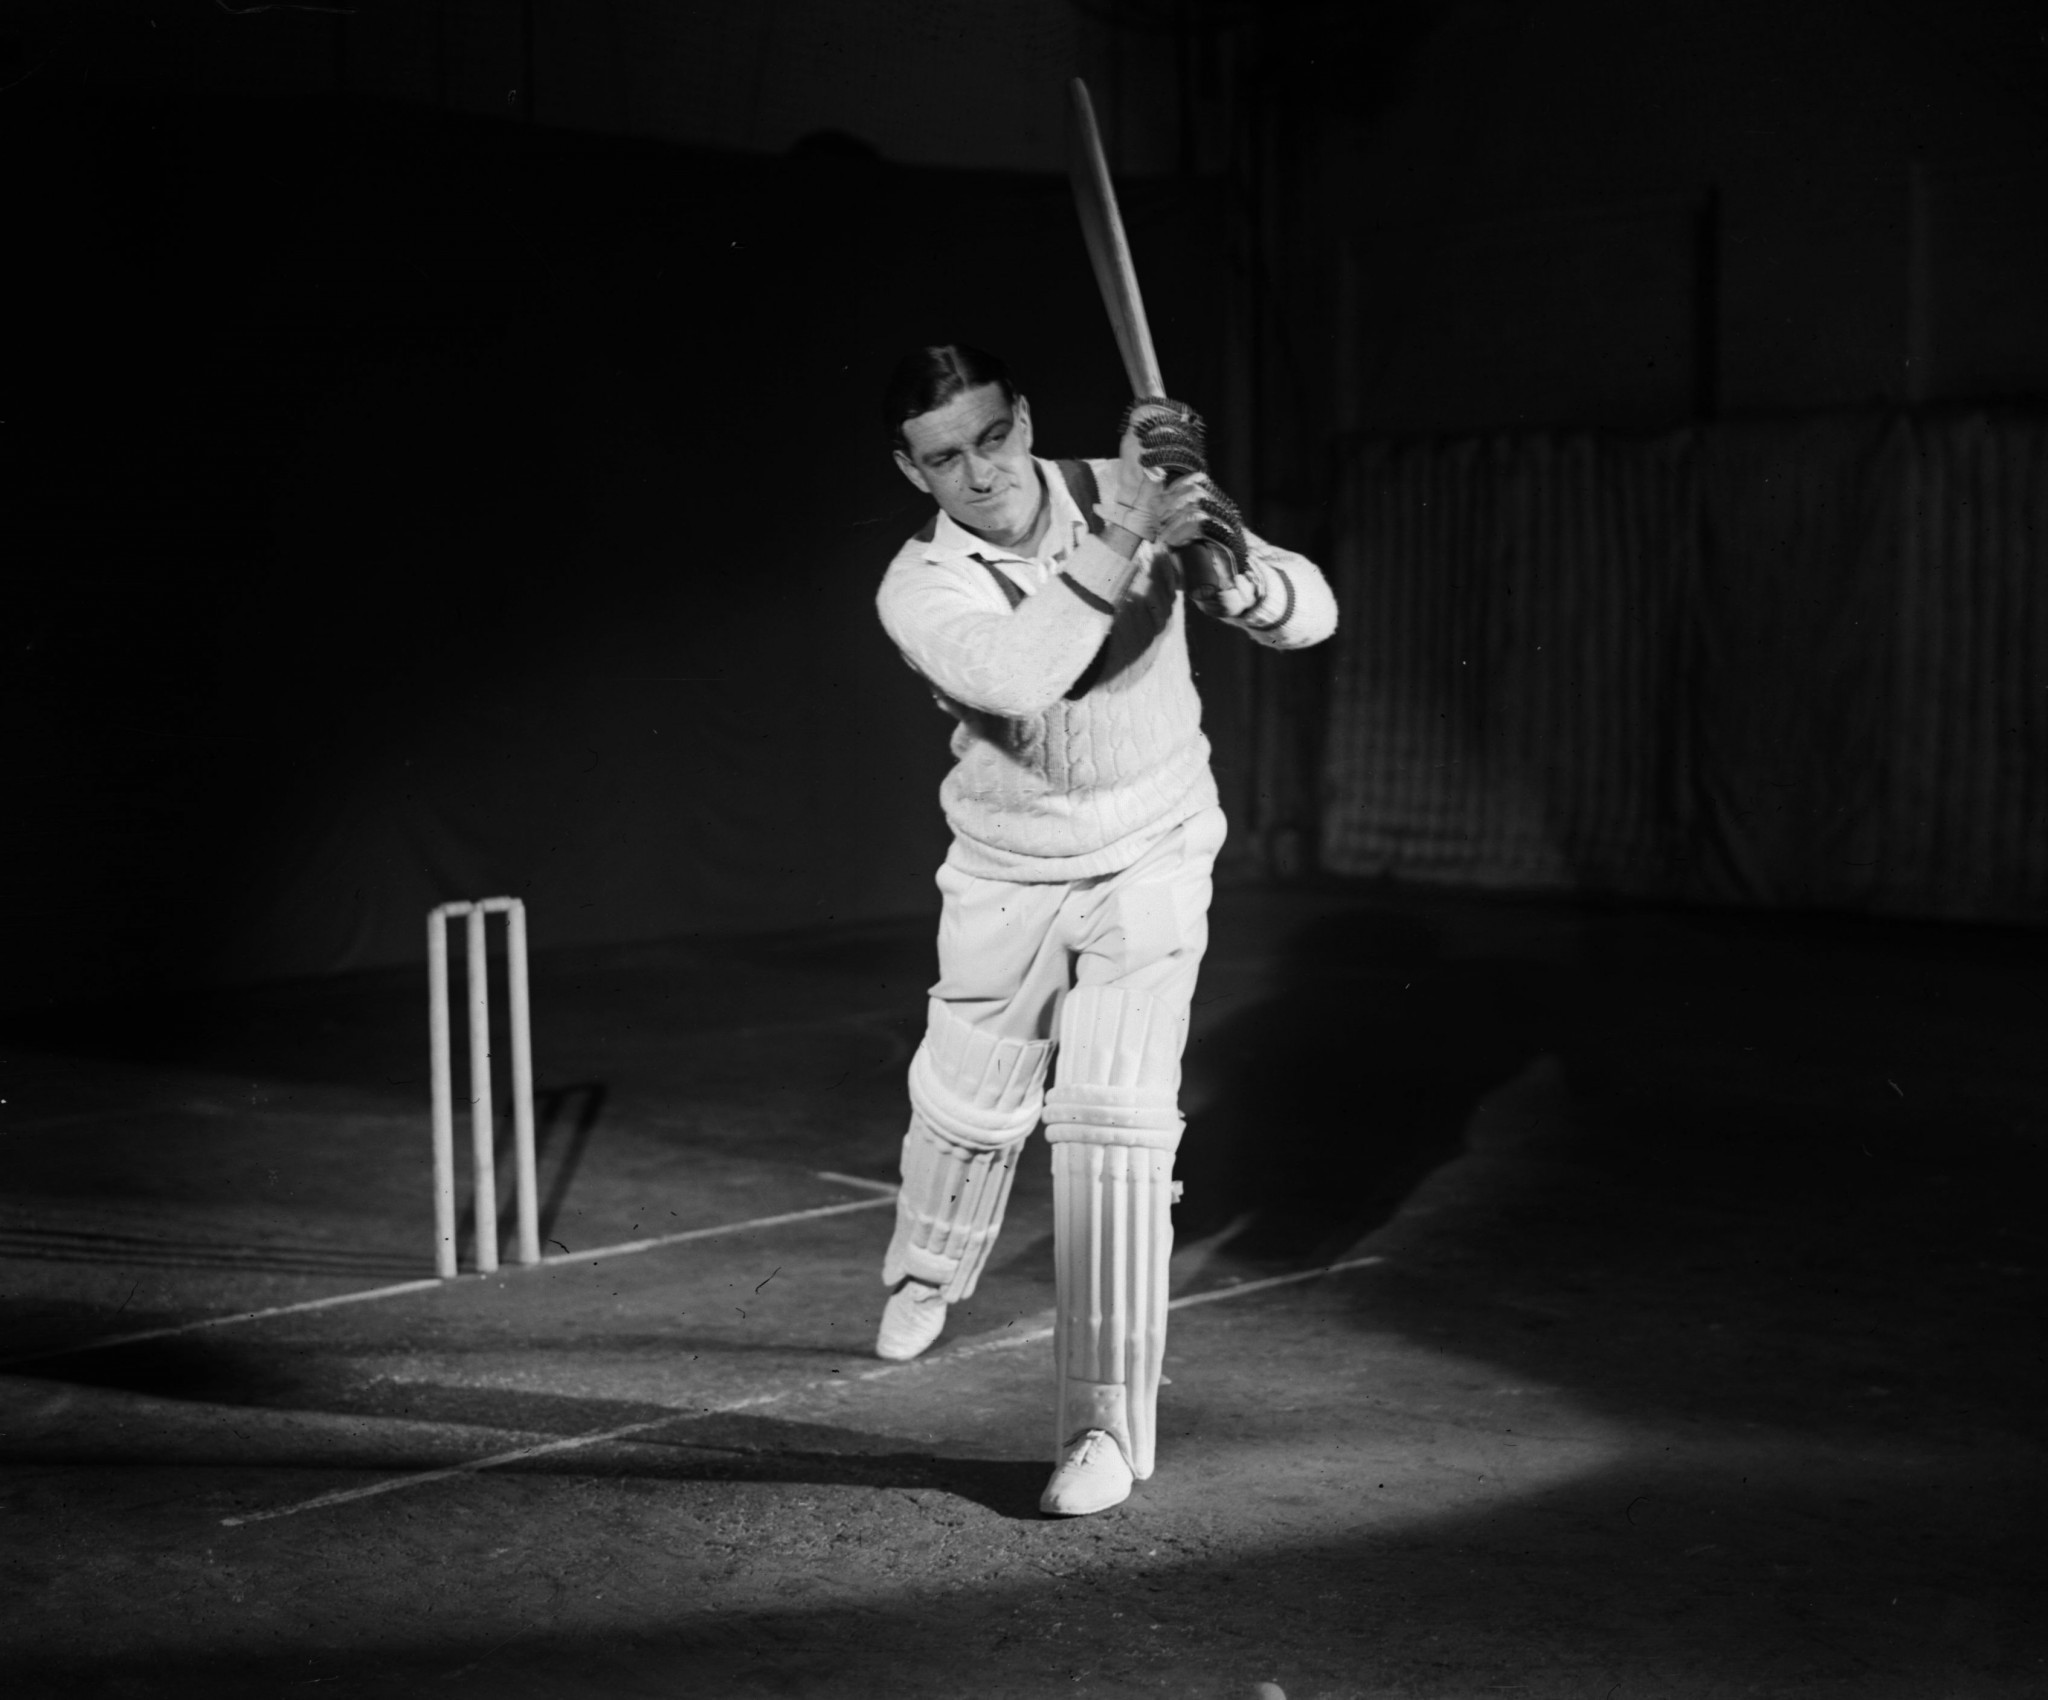 David Fishwick >> David Owen: Portrait of an Ashes Victor and what it tells us about image-making in sport